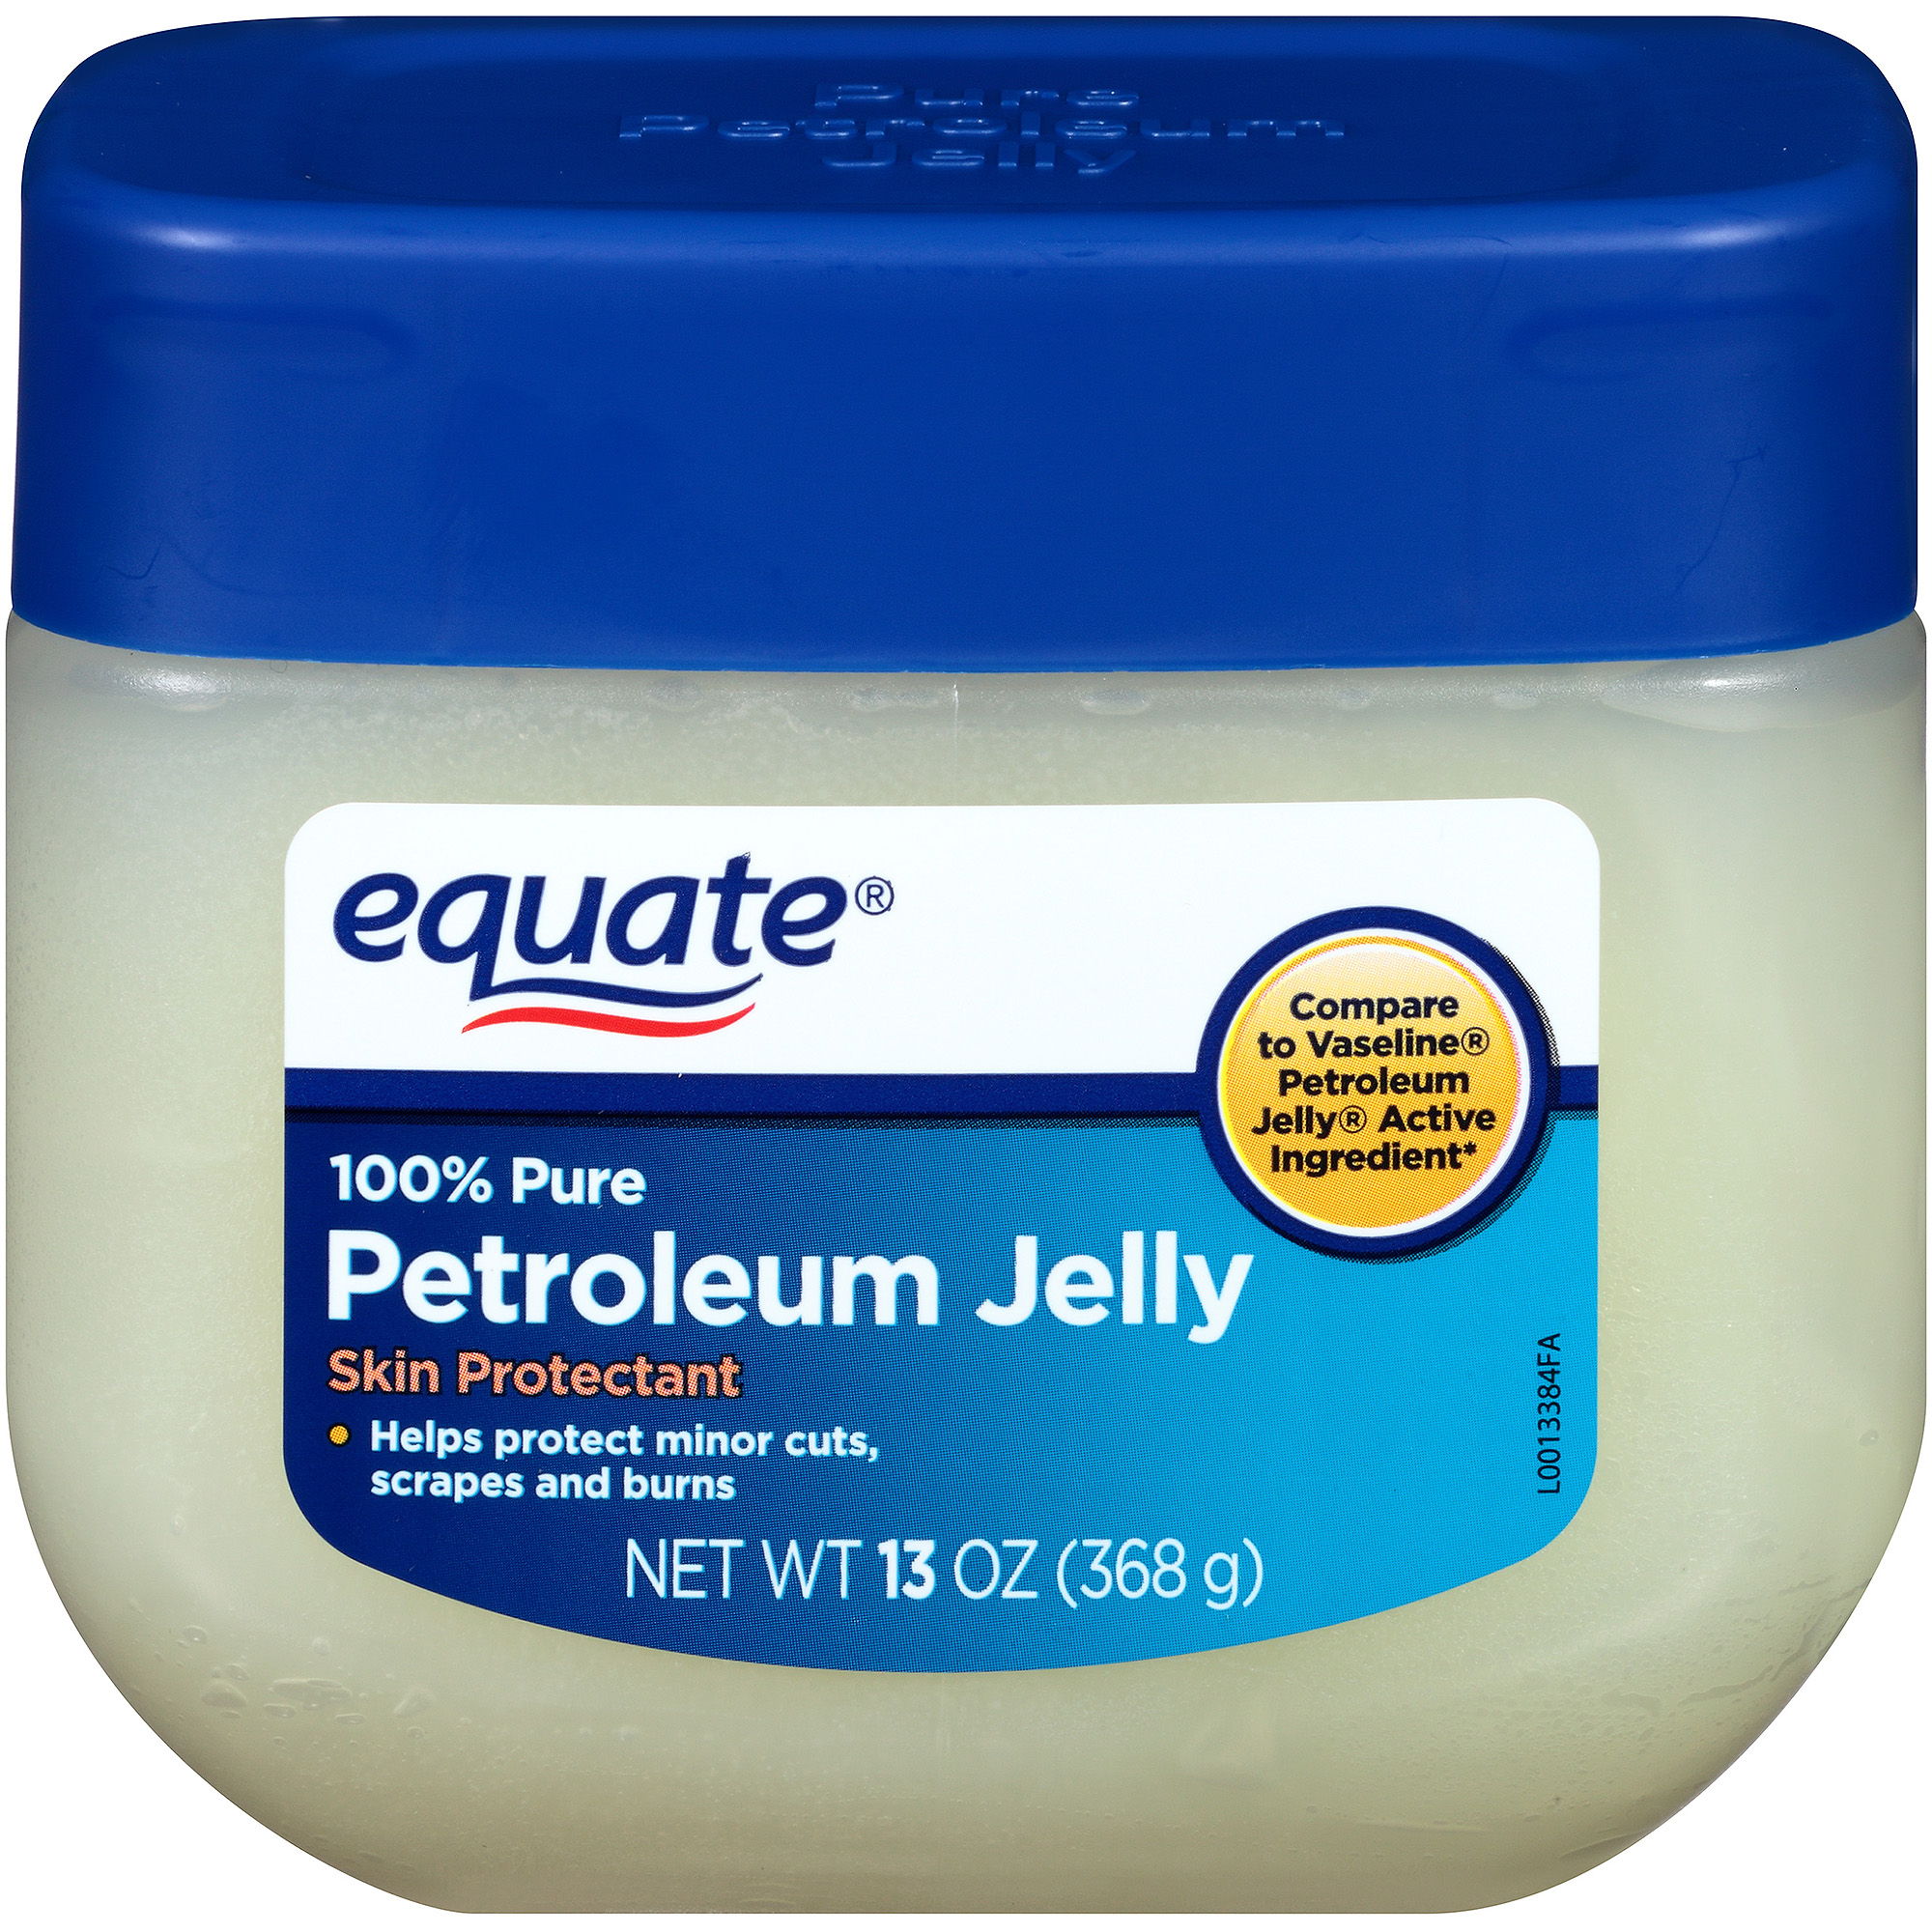 Equate 100% Pure Petroleum Jelly Skin Protectant, 13 oz